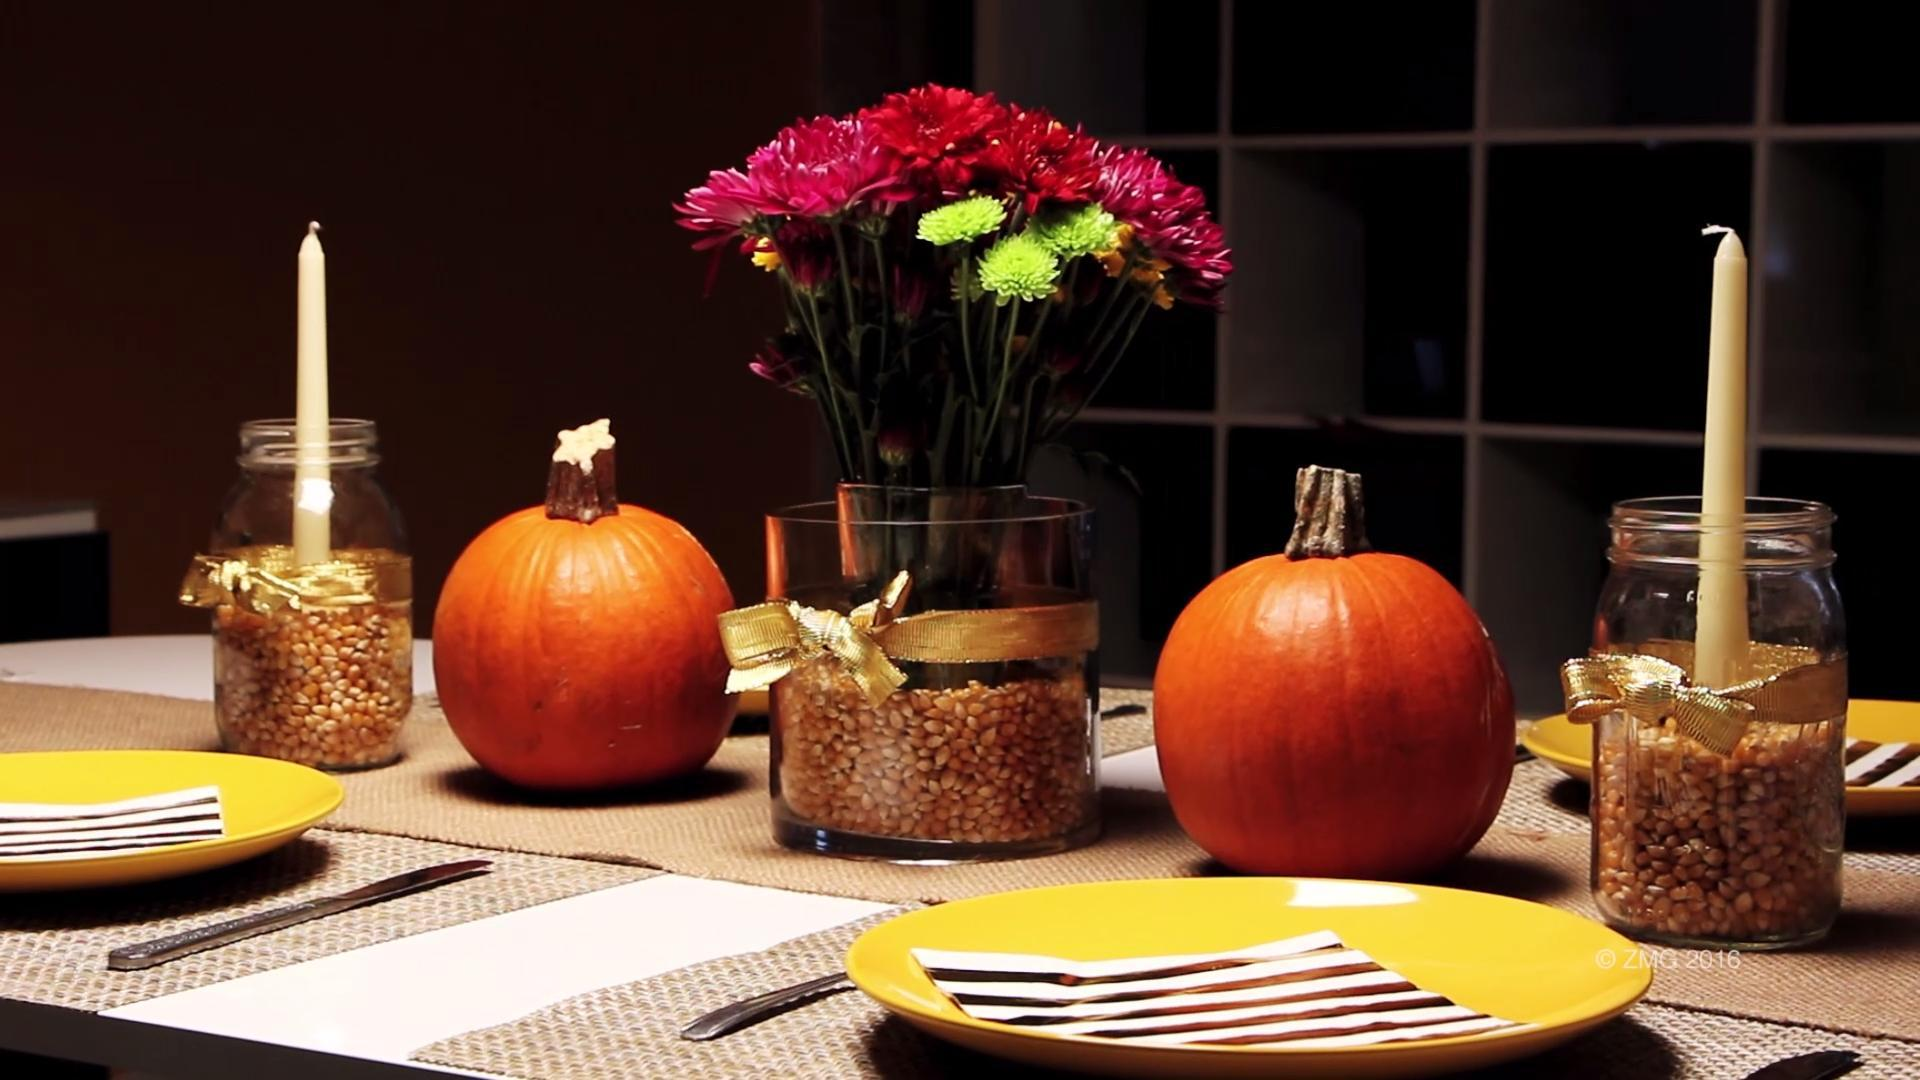 Inexpensive Table Setting Tips for Friendsgiving